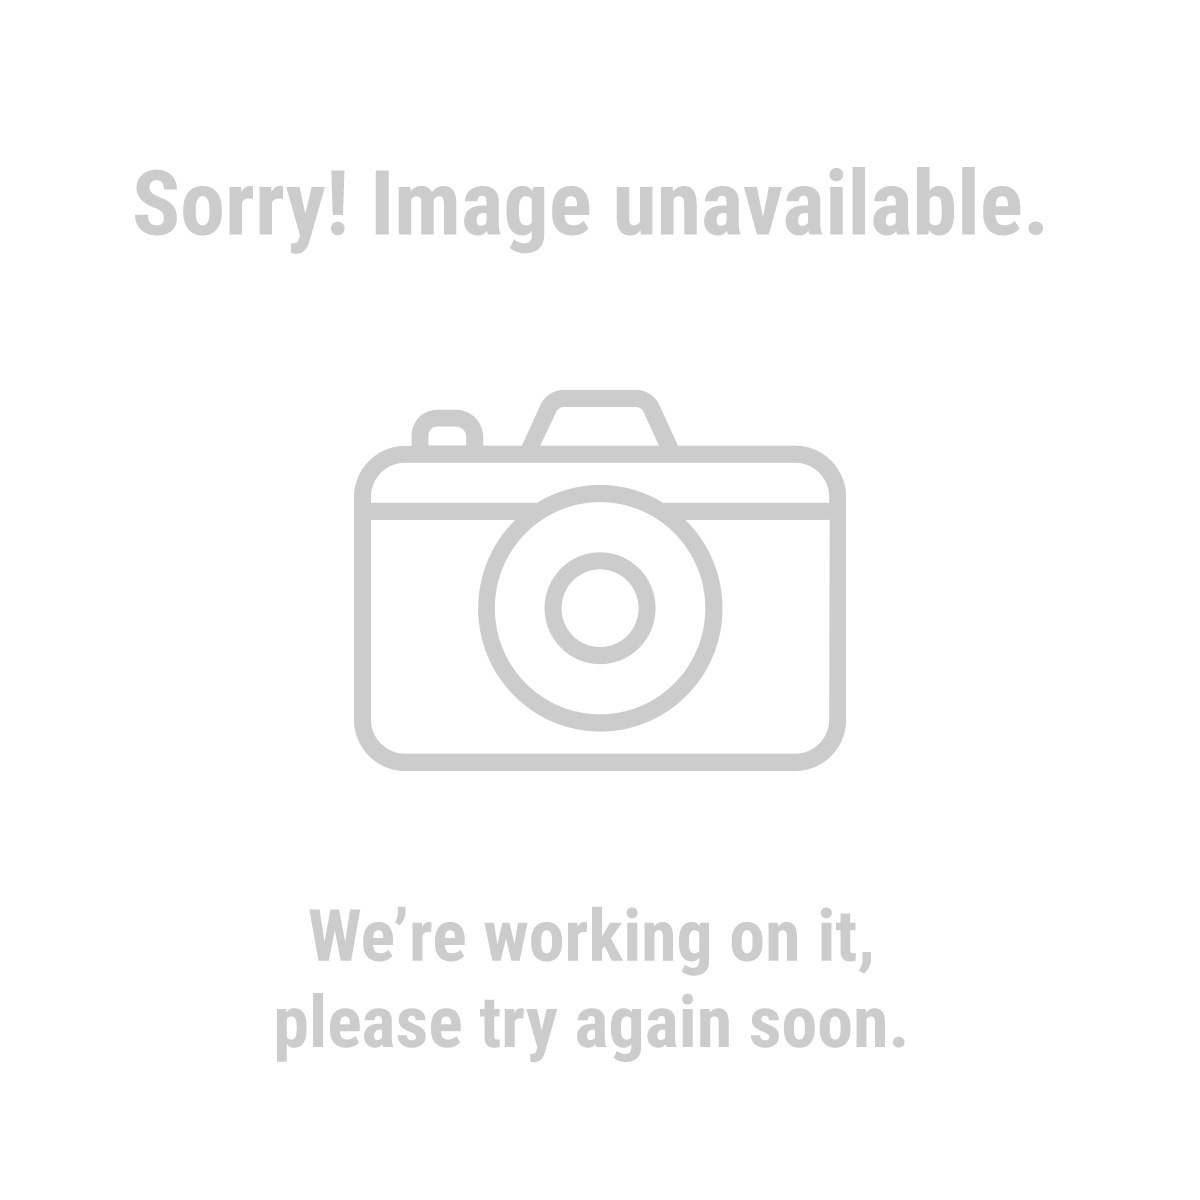 350 Lb. Capacity Sawhorses, 2 Piece Set